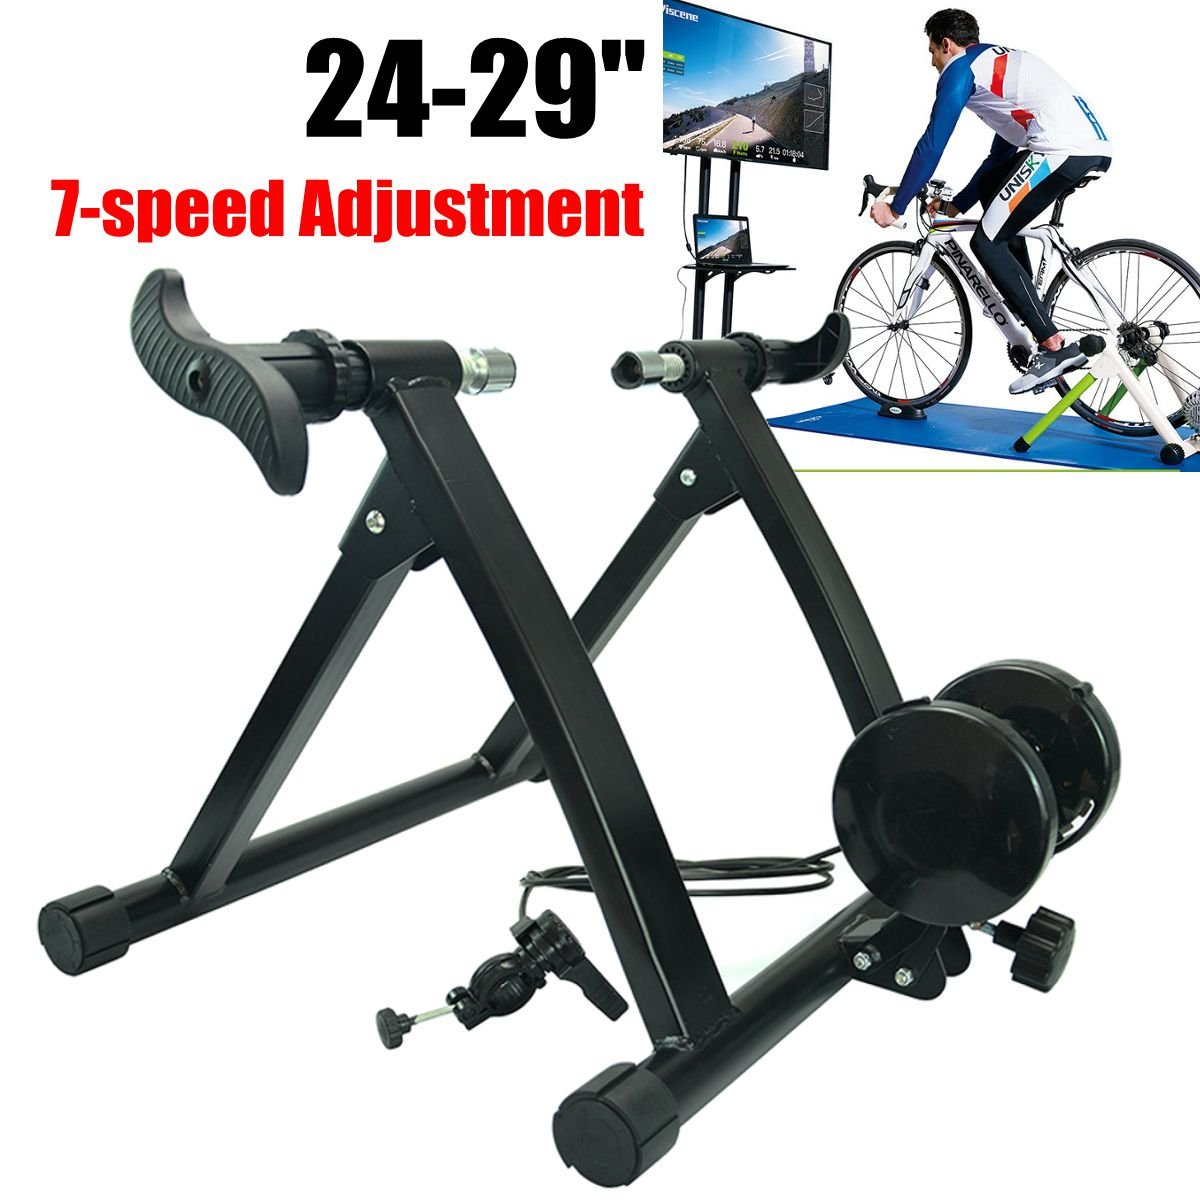 Bicycle Trainer Home Training Indoor Exercise 24-29 7 Speed Adjustable Road Bike Trainer Road MTB Bike Trainers Cycling Roller